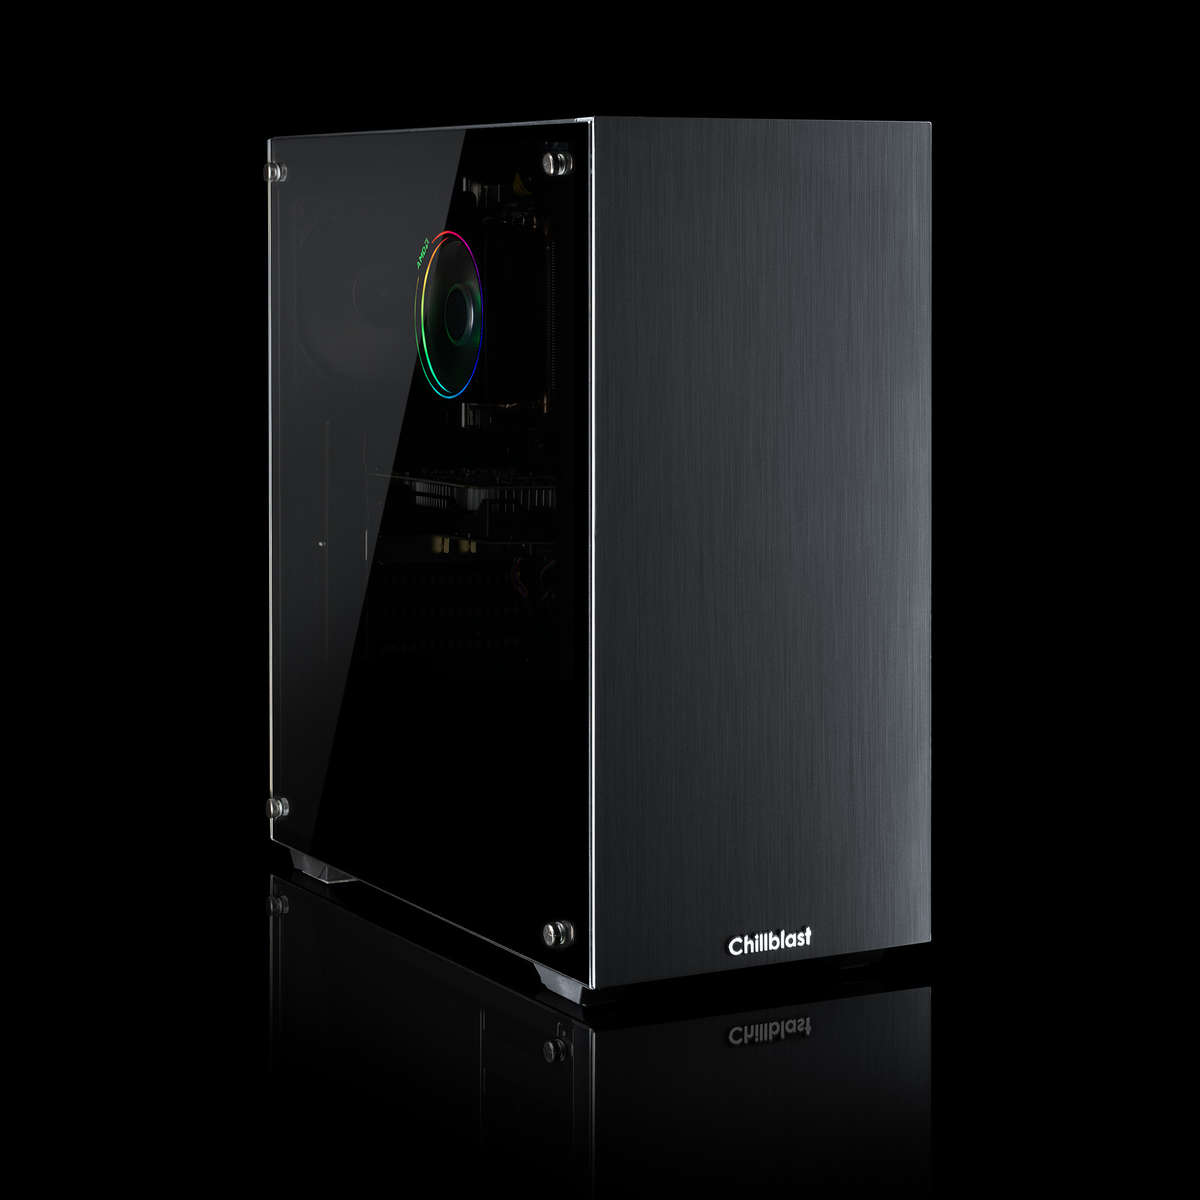 Image of a Chillblast Fusion Akula RTX 2060 Super Gaming PC